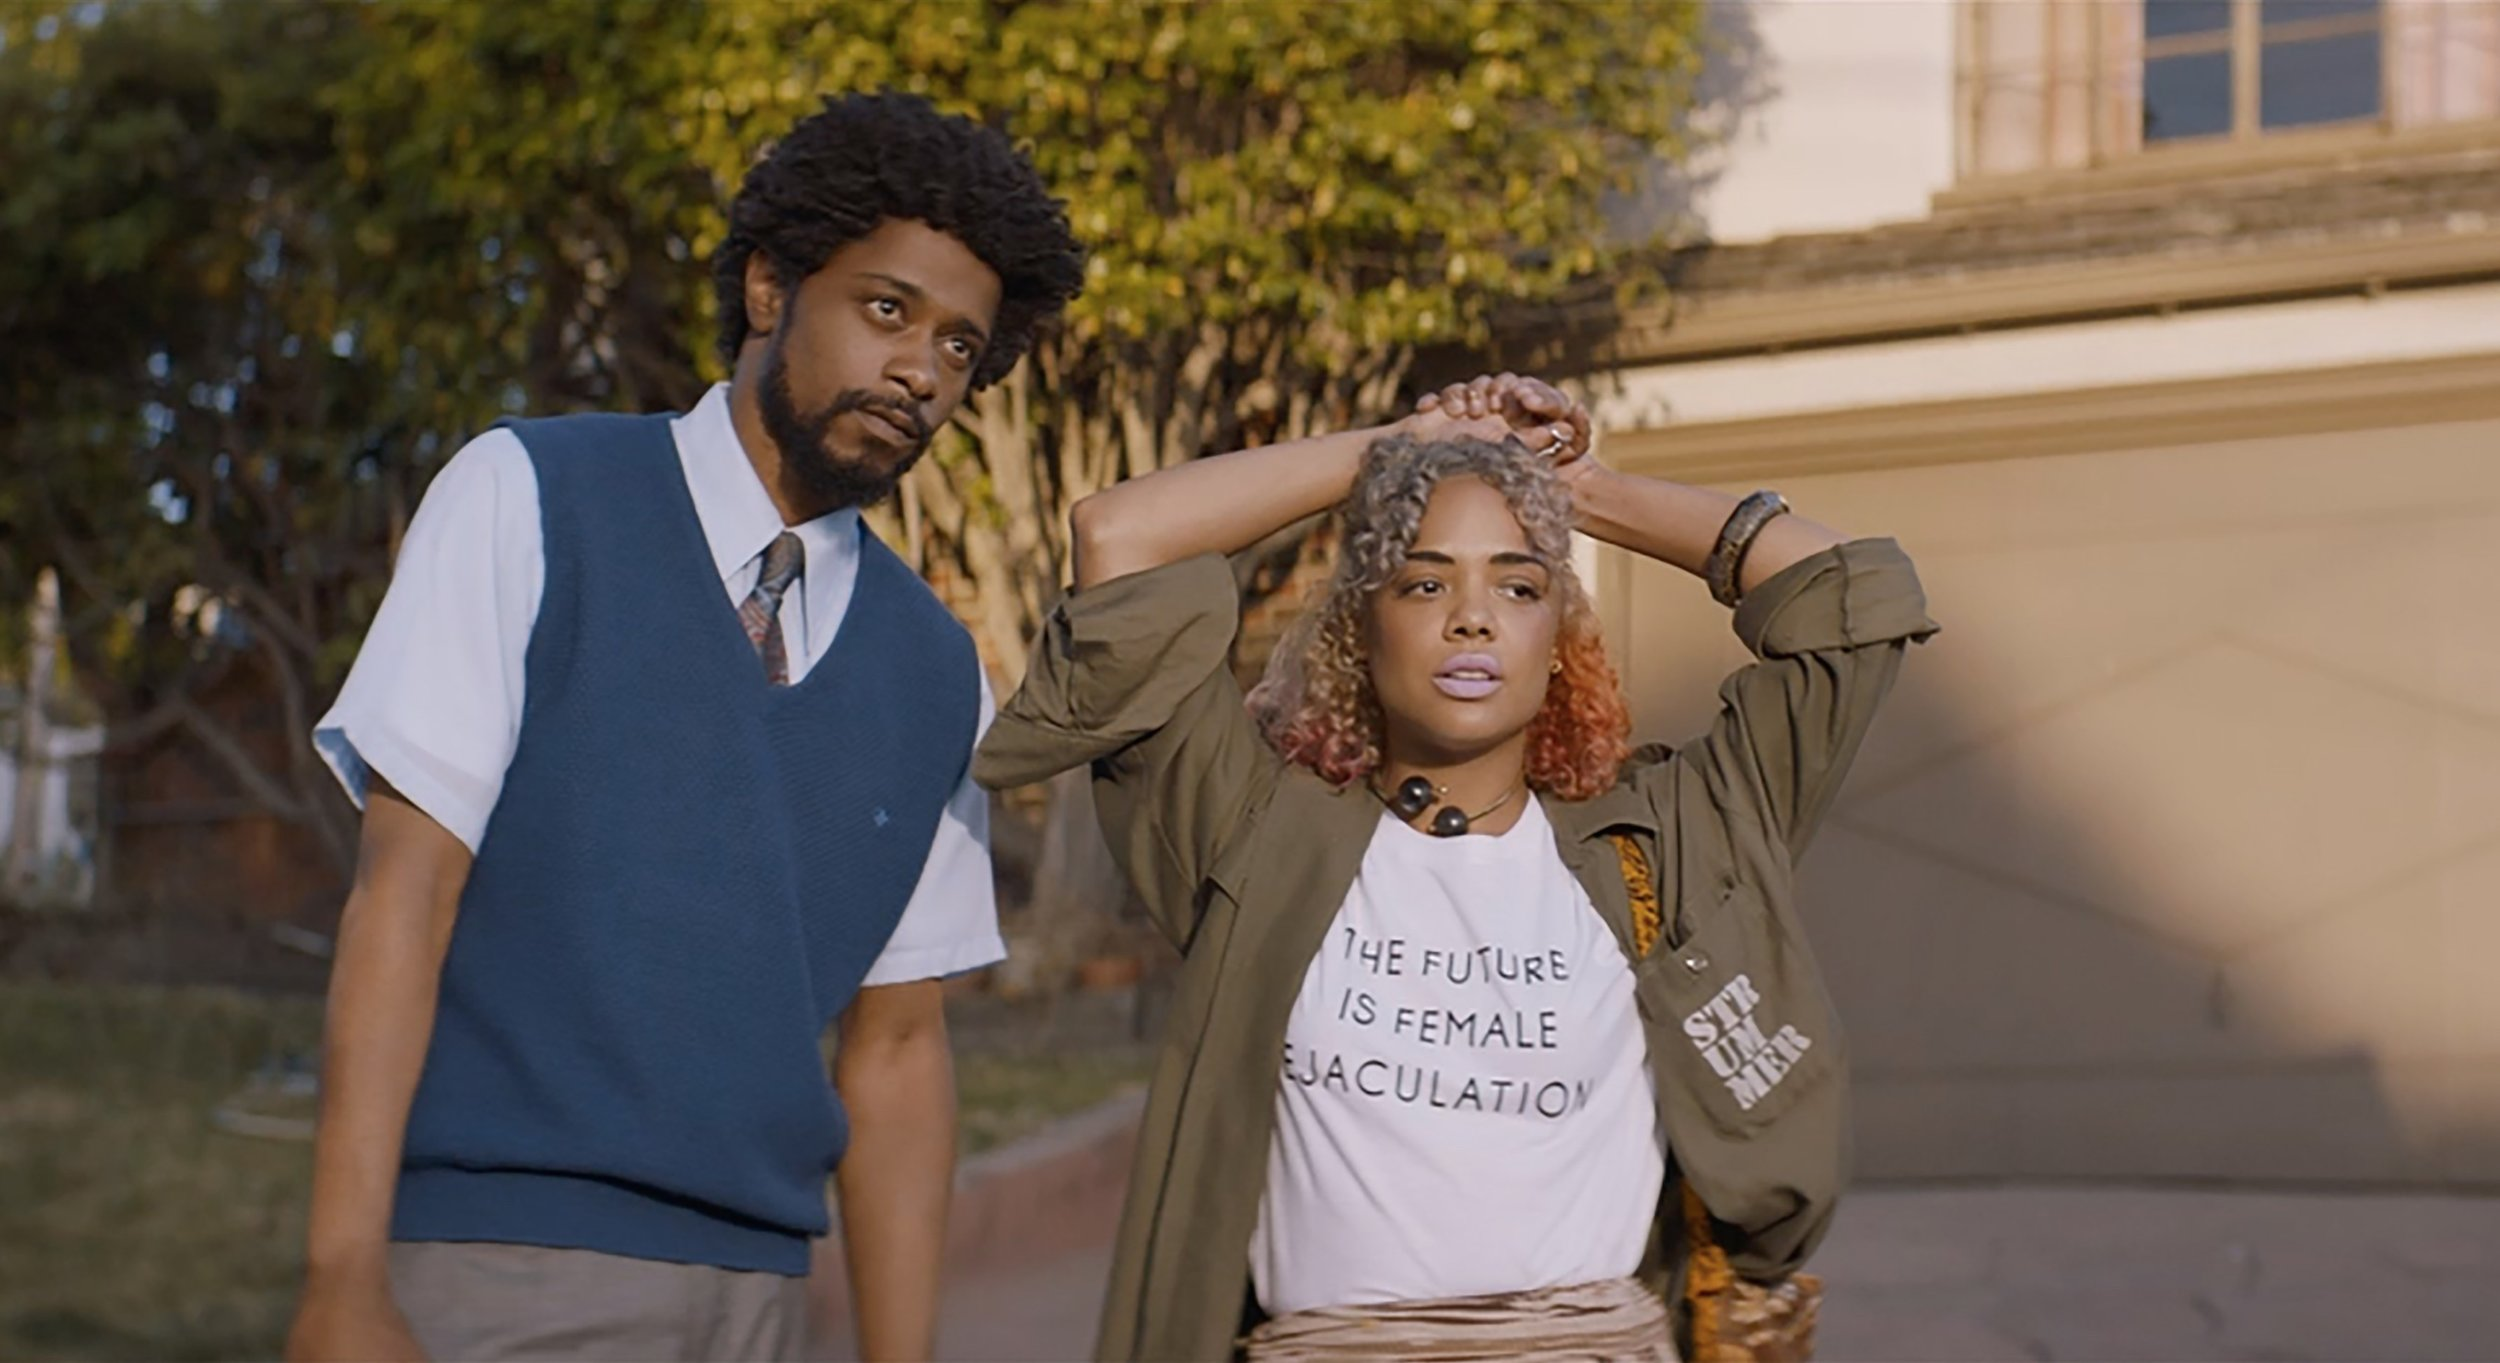 I am now even more enamored with Lakeith Stanfield and Tessa Thompson.